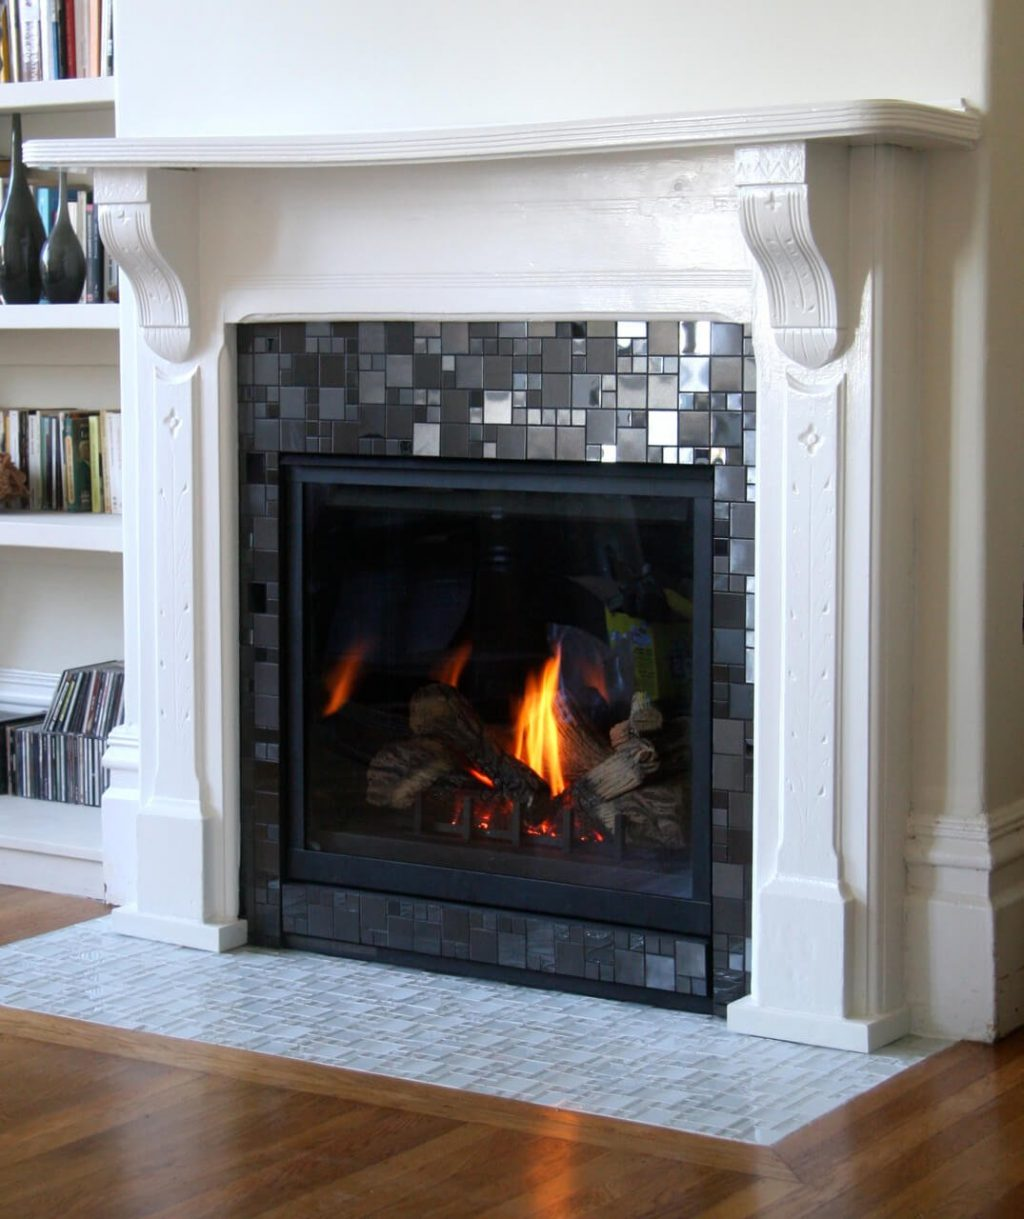 Genial Glass Mosaic Fireplace Tiles